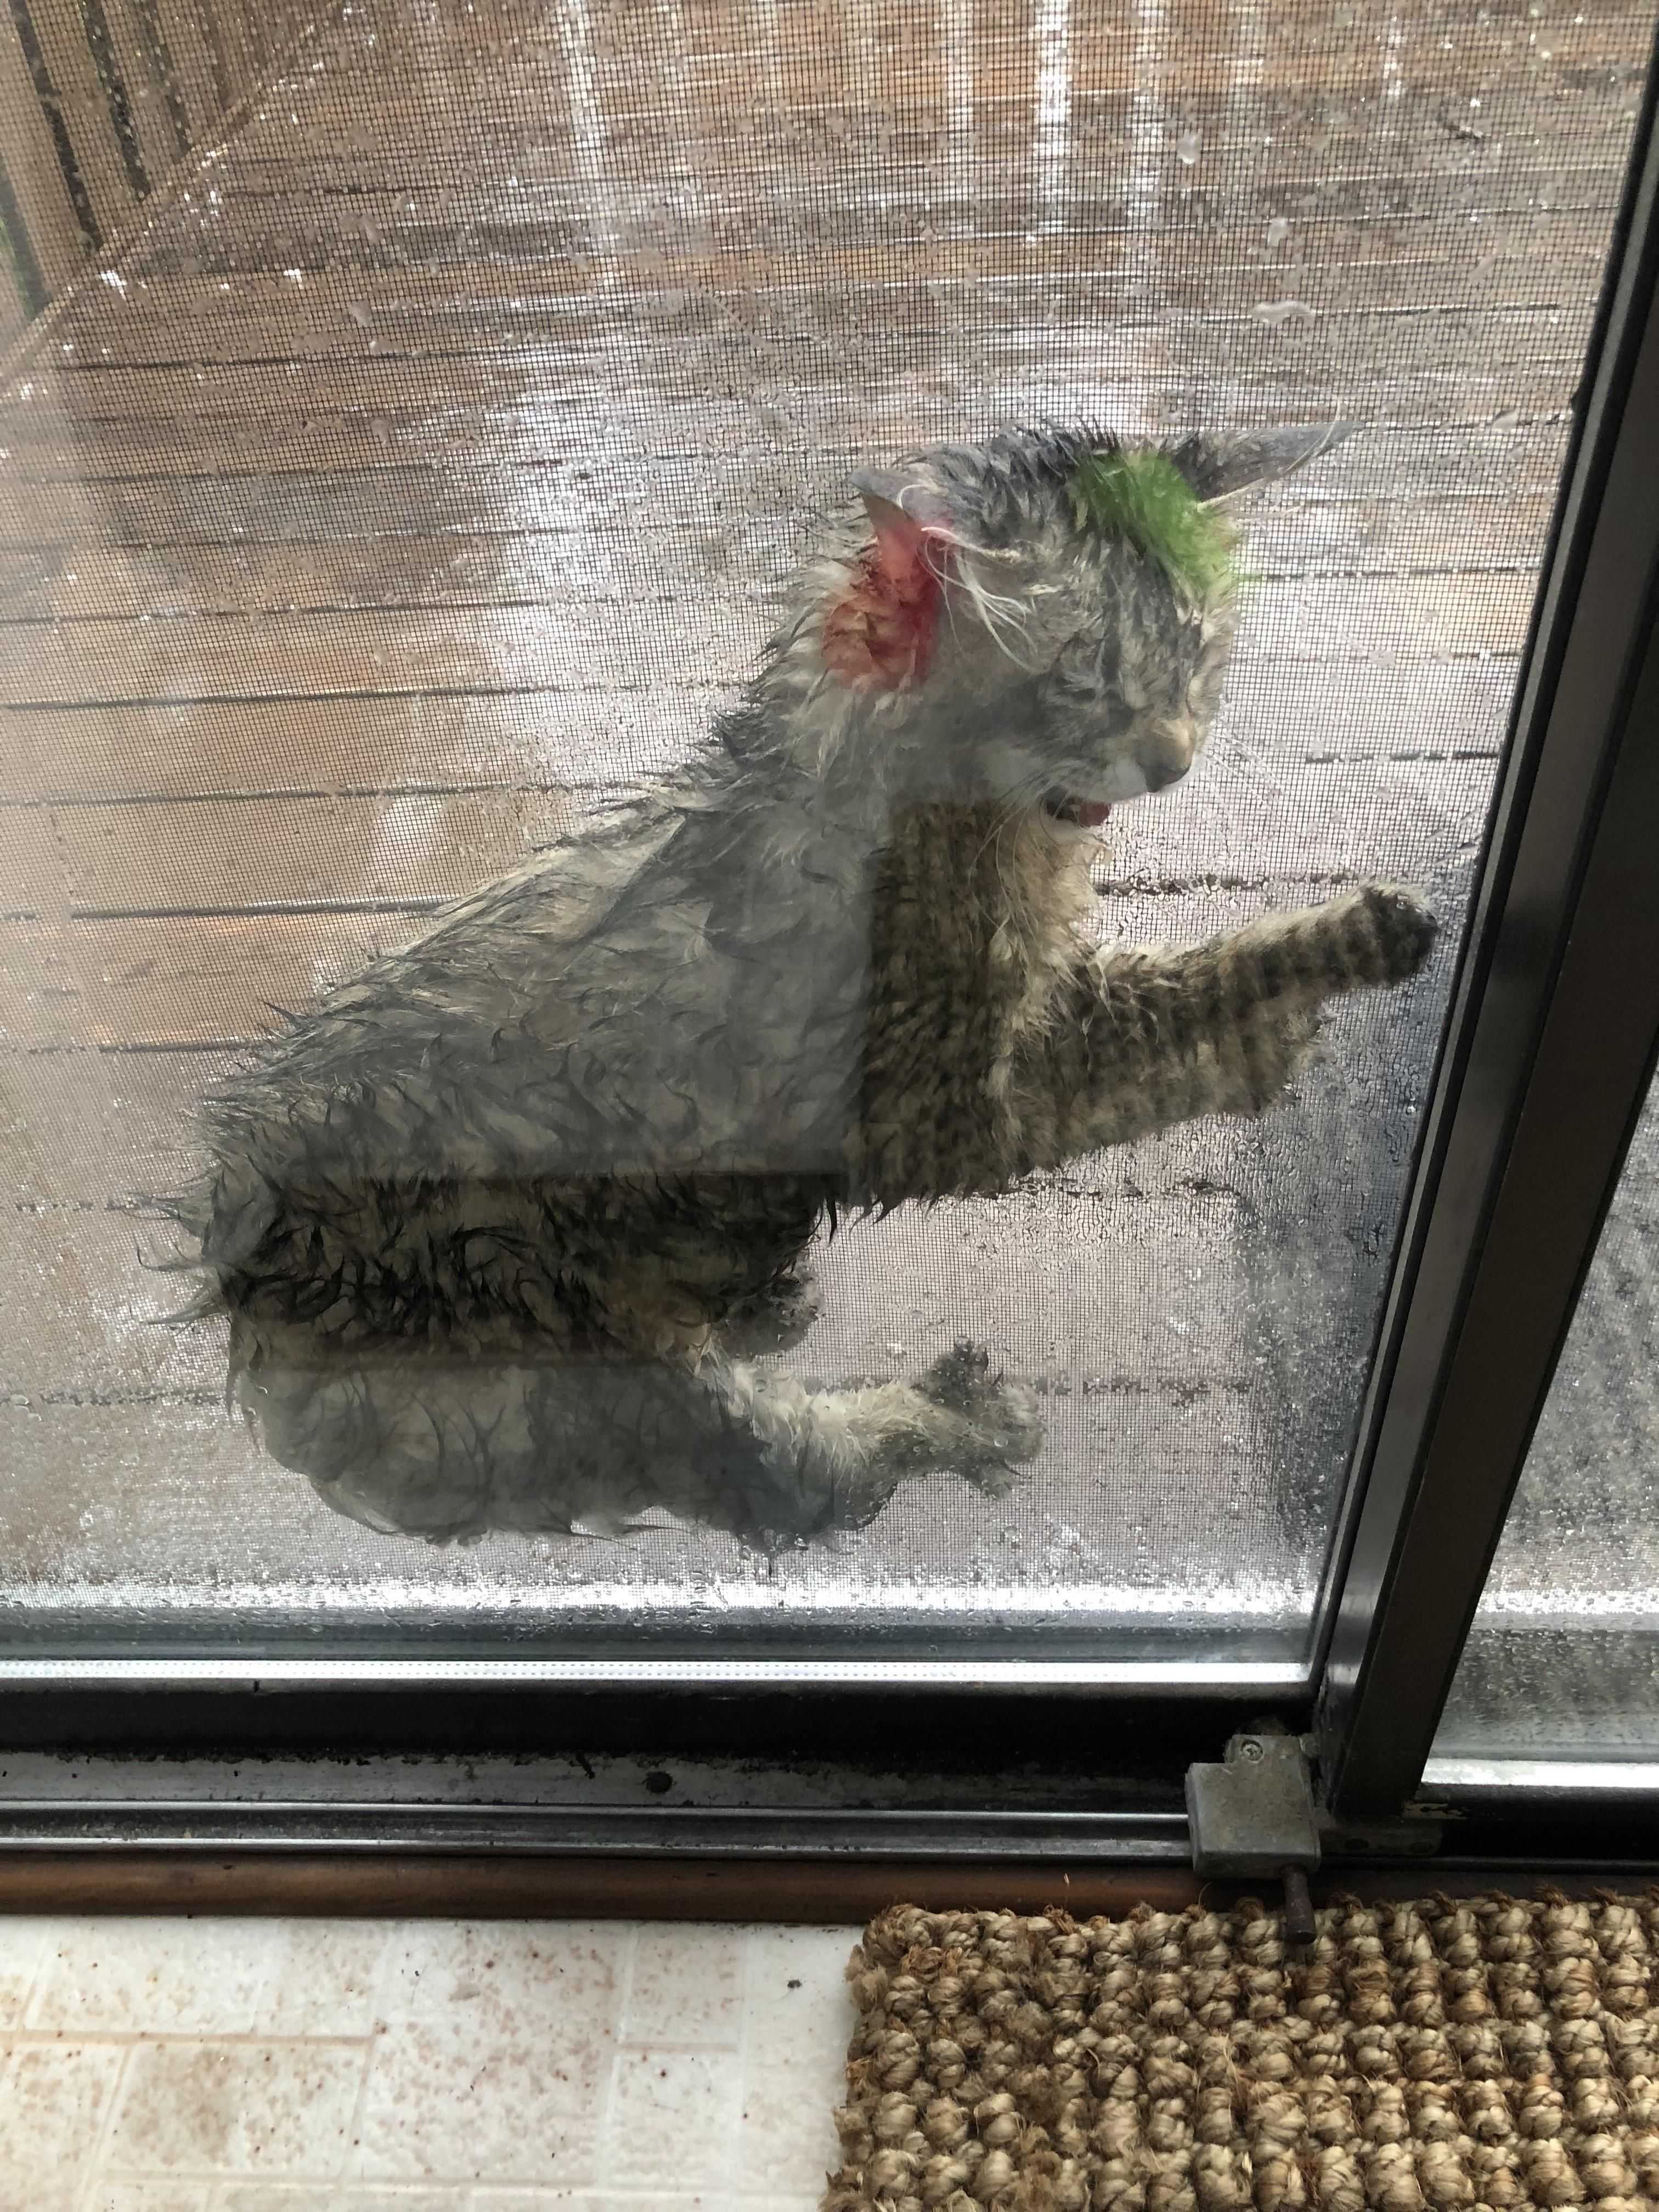 My cat wouldn't come in before I left for work even after I warned her about the incoming rain. This is what I saw as soon as I walked in the house. I'm pretty sure she learned a valuable lesson.